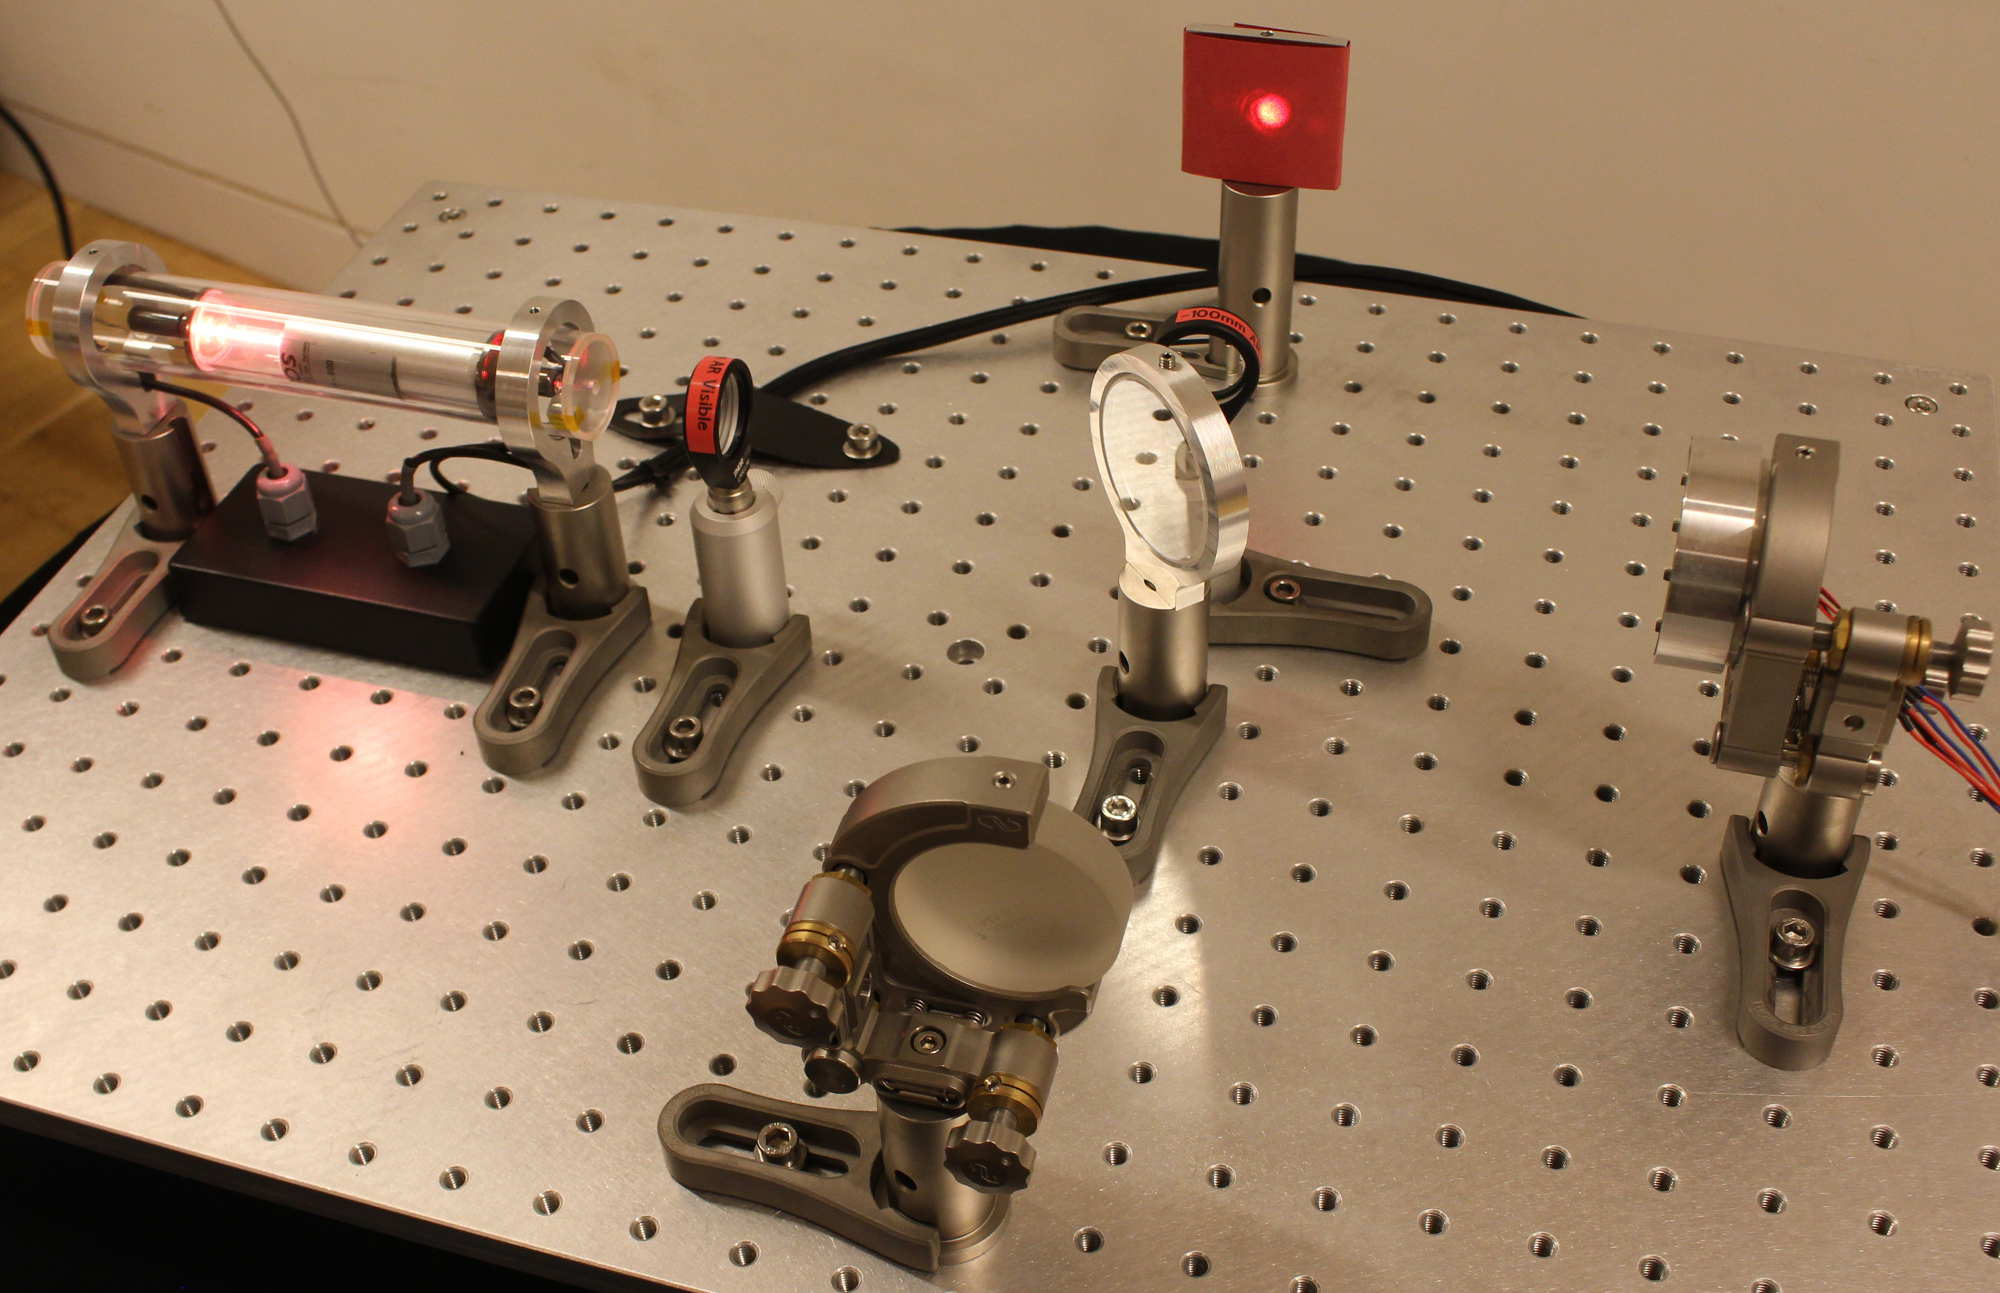 Our own table top laser interferometer at the University of Birmingham. Image credit: Hannah Middleton